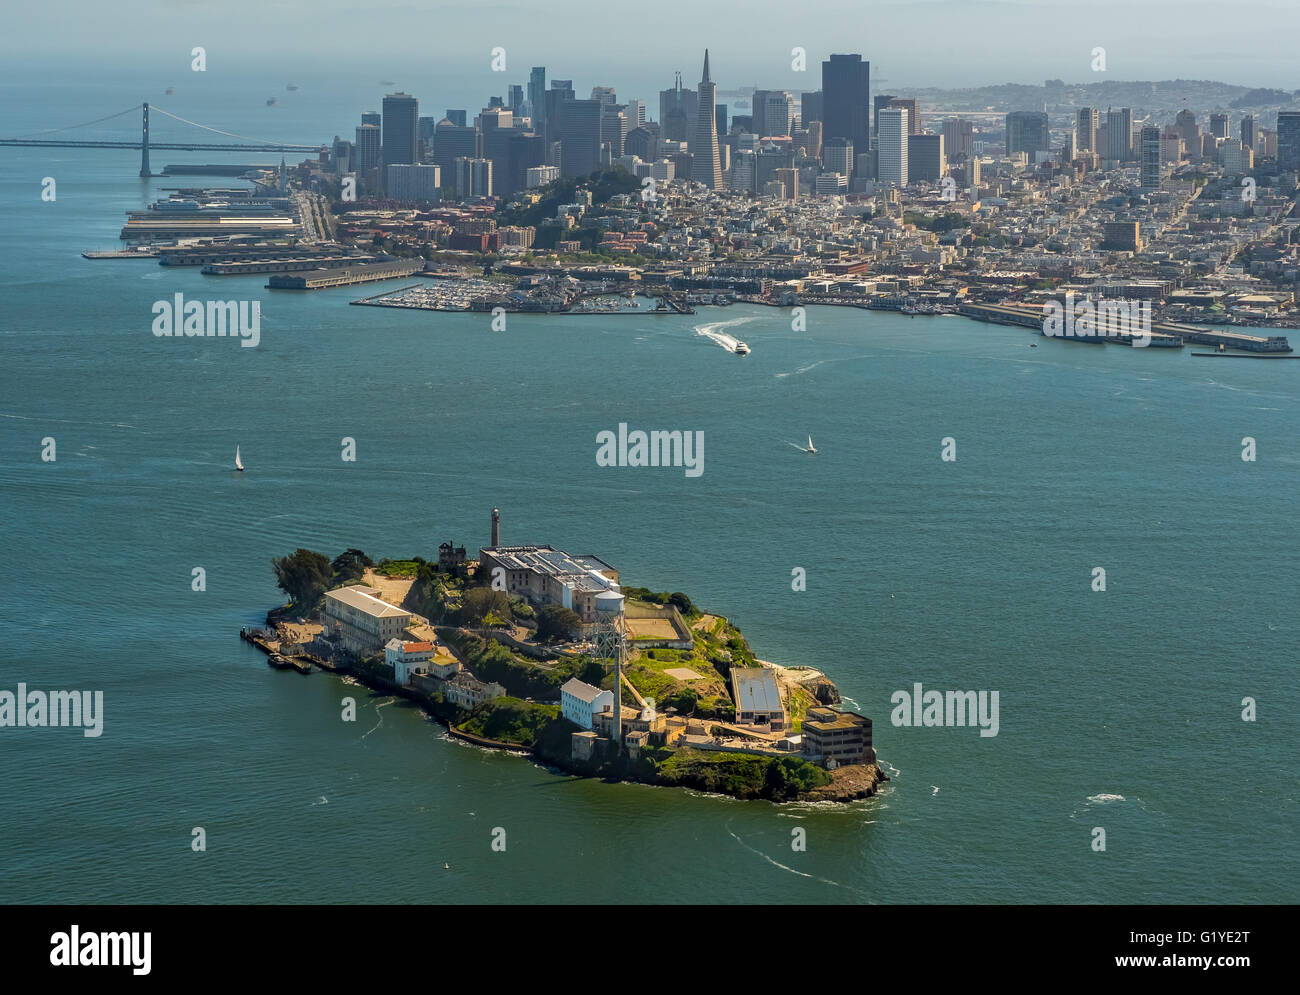 Aerial view, Alcatraz, Alcatraz prison island with lighthouse and San Francisco in the background, San Francisco - Stock Image